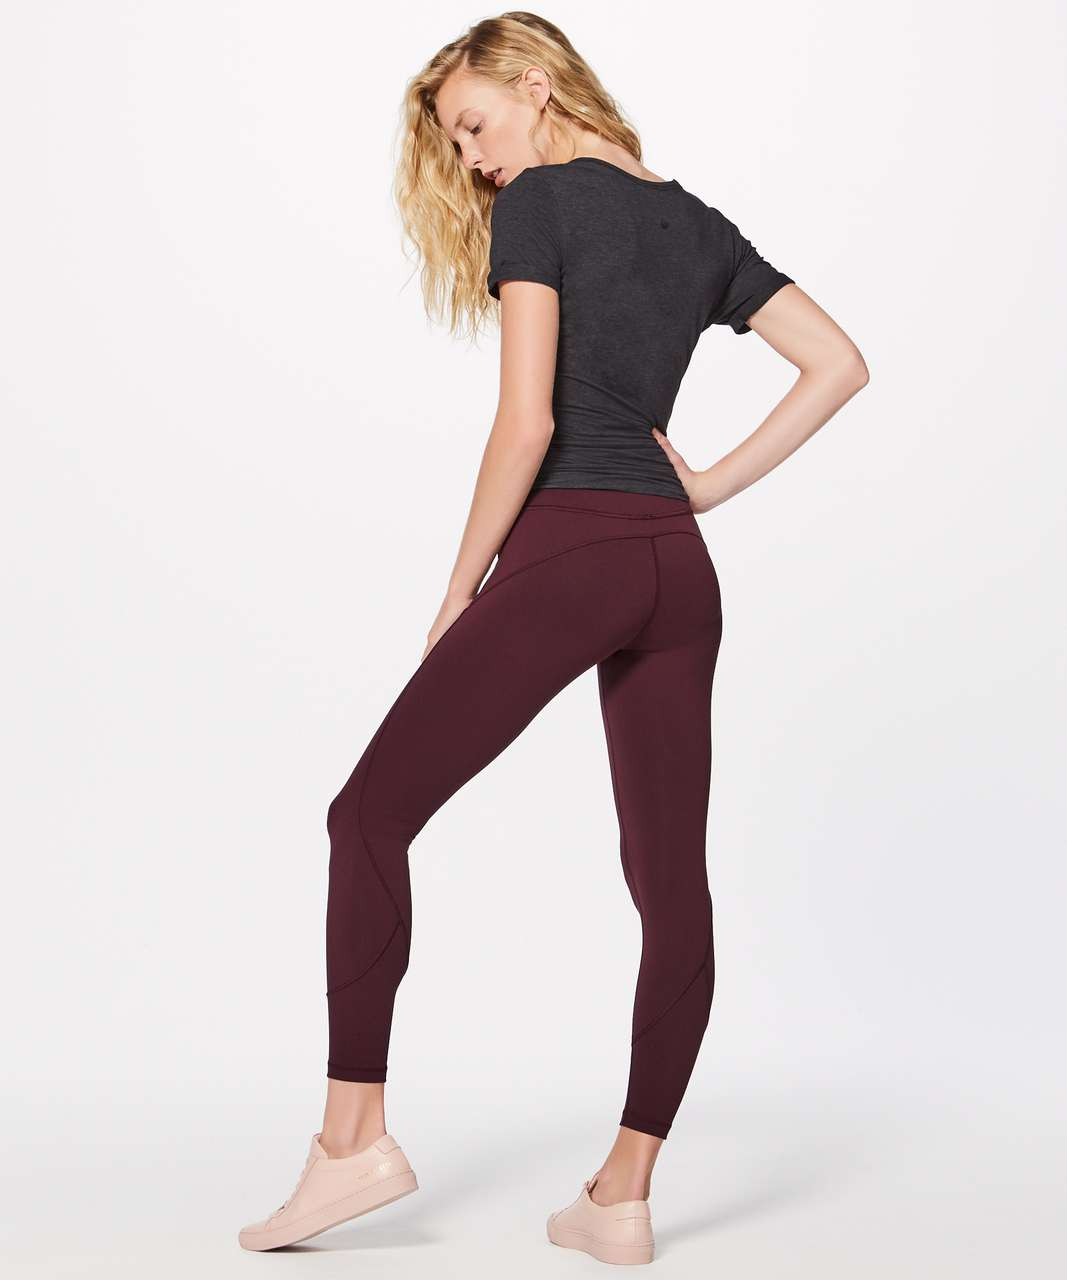 "Lululemon In Movement 7/8 Tight *Everlux 25"" - Garnet"